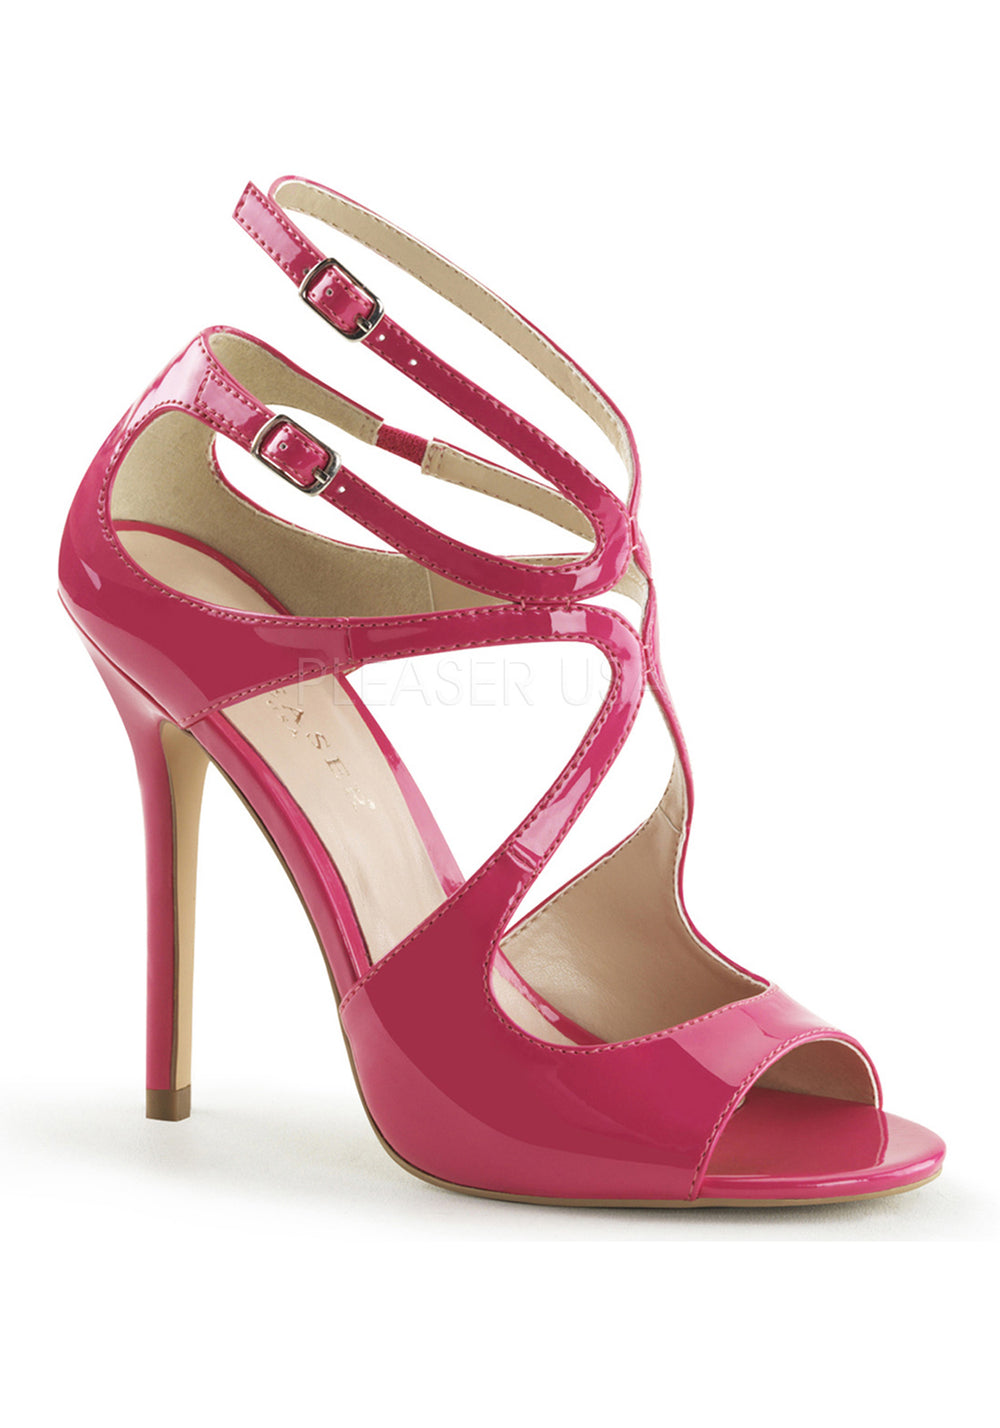 Classy & Sassy Pink Cutout Sandals